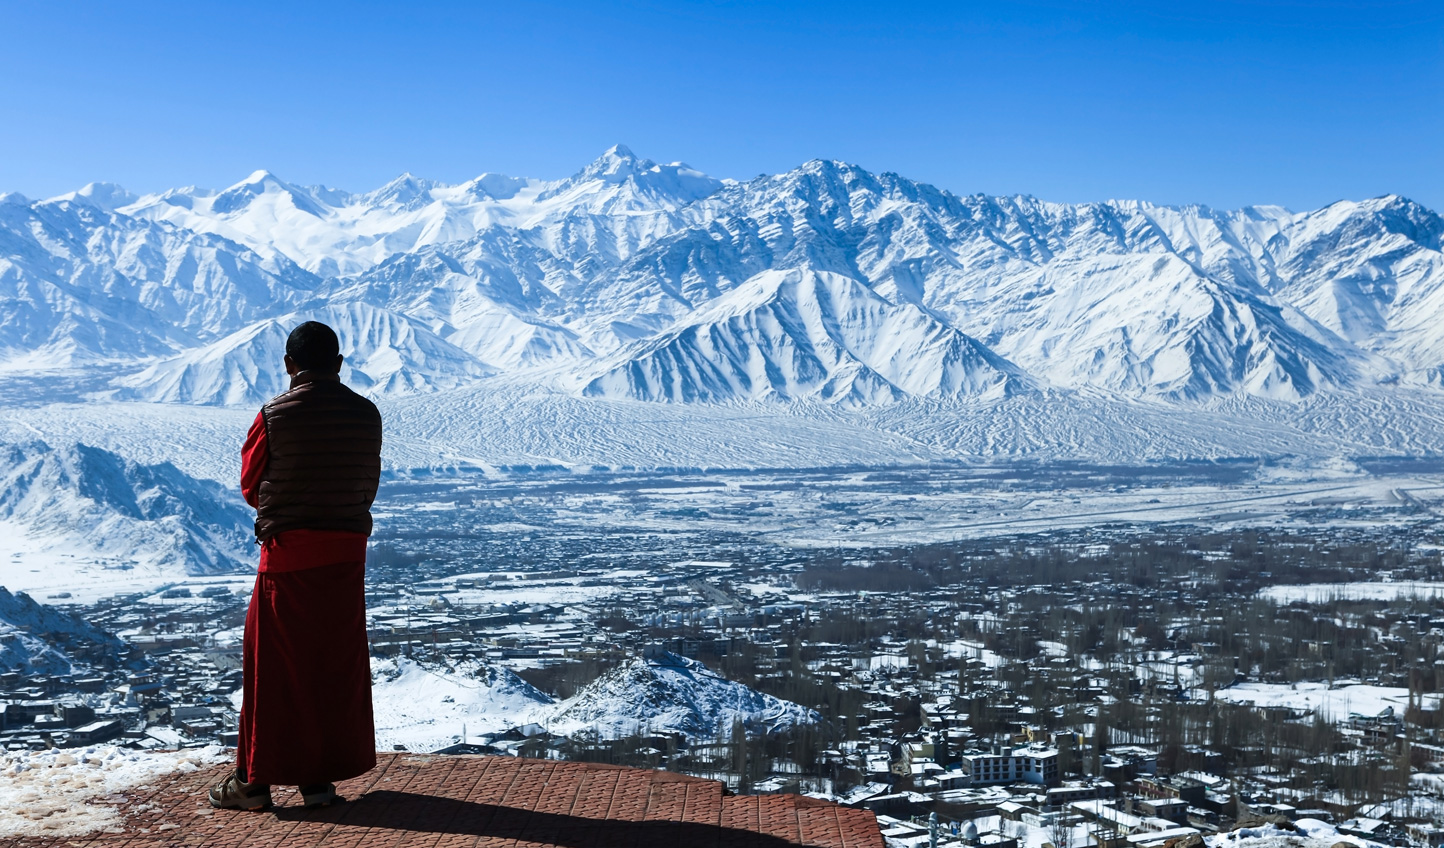 Hike through the foothills of the Himalayas and embrace the spirituality of Northern India